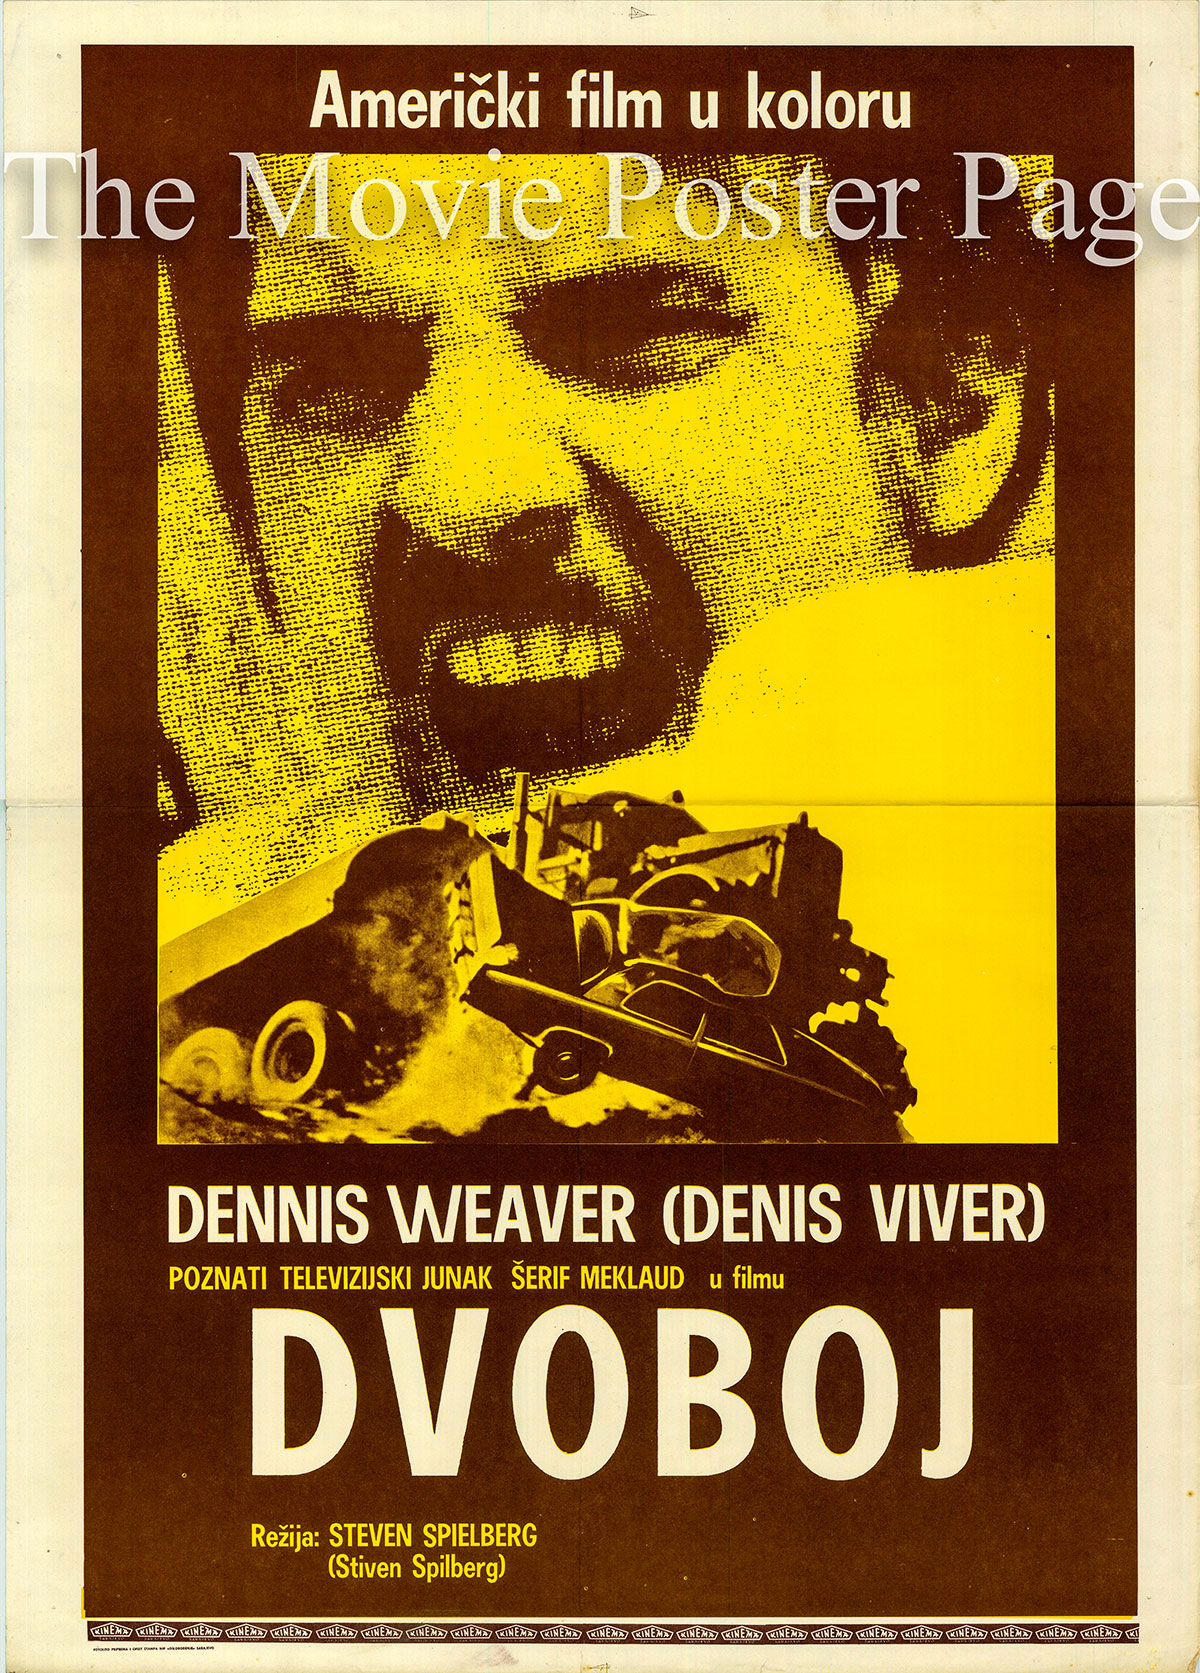 Pictured is a Yugoslavian promotional poster for the 1972 Steven Spielberg TV film Duel starring Dennis Weaver.